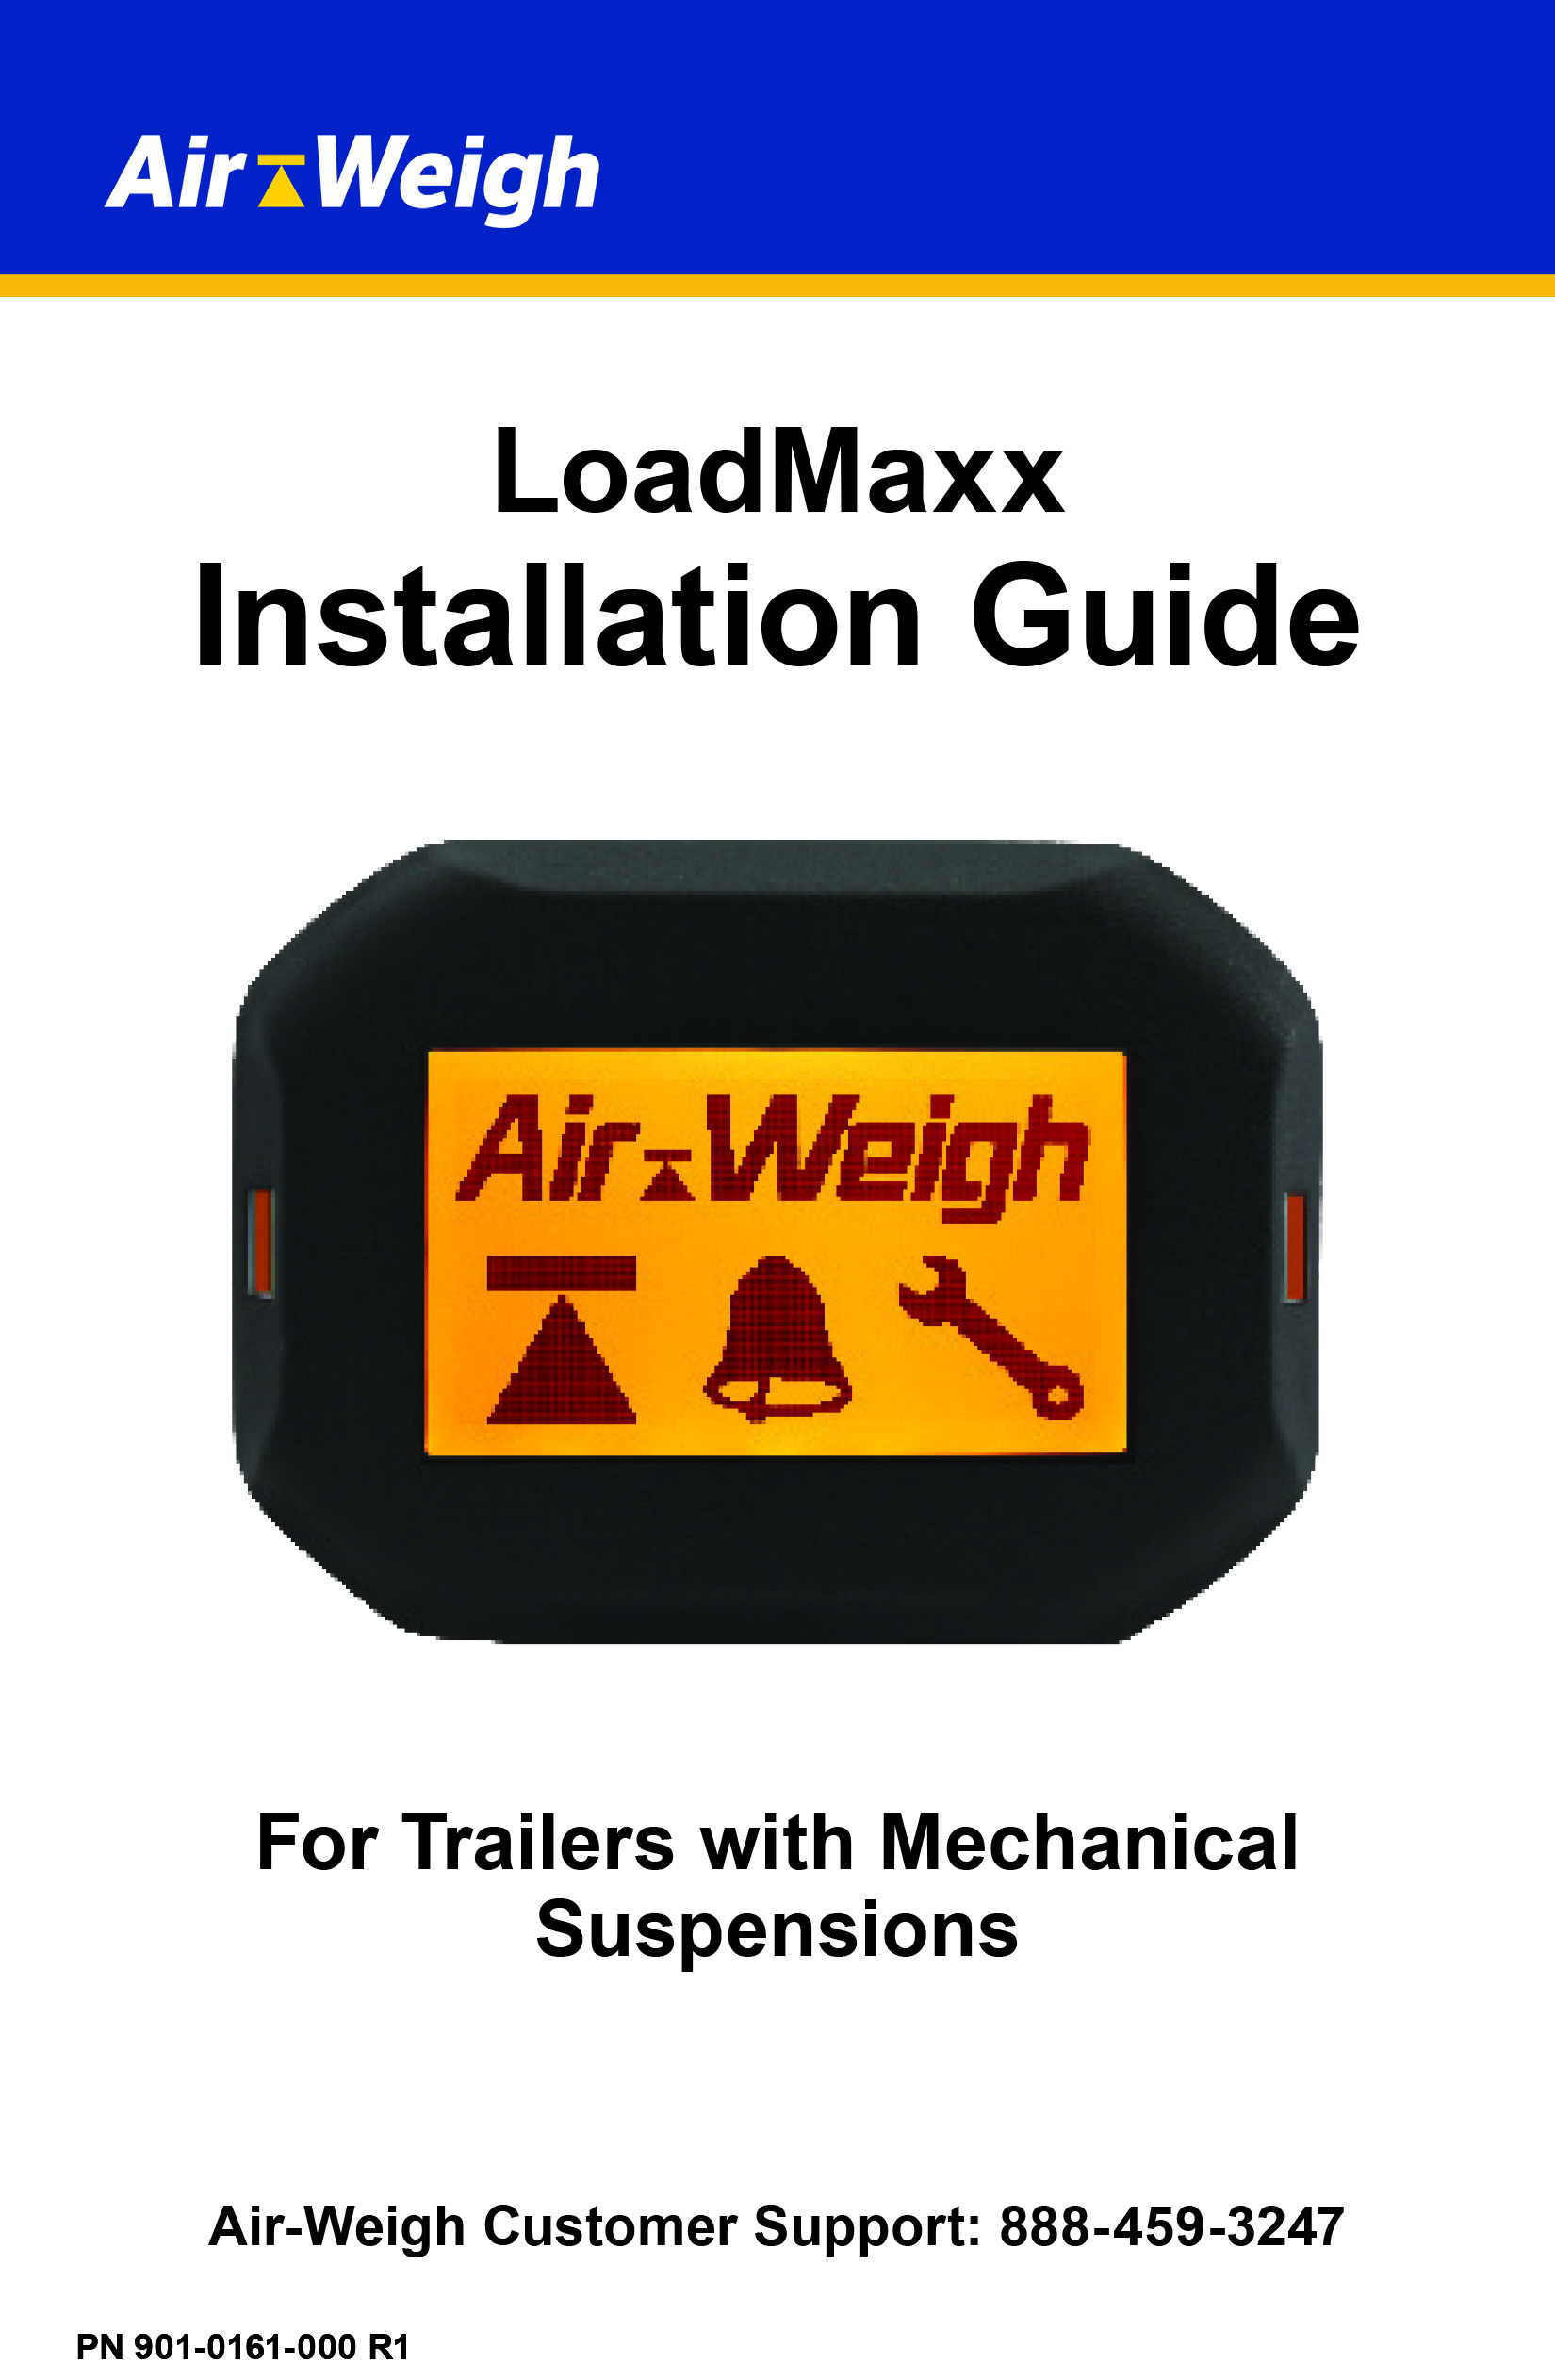 Air-Weigh Installation Manuals on